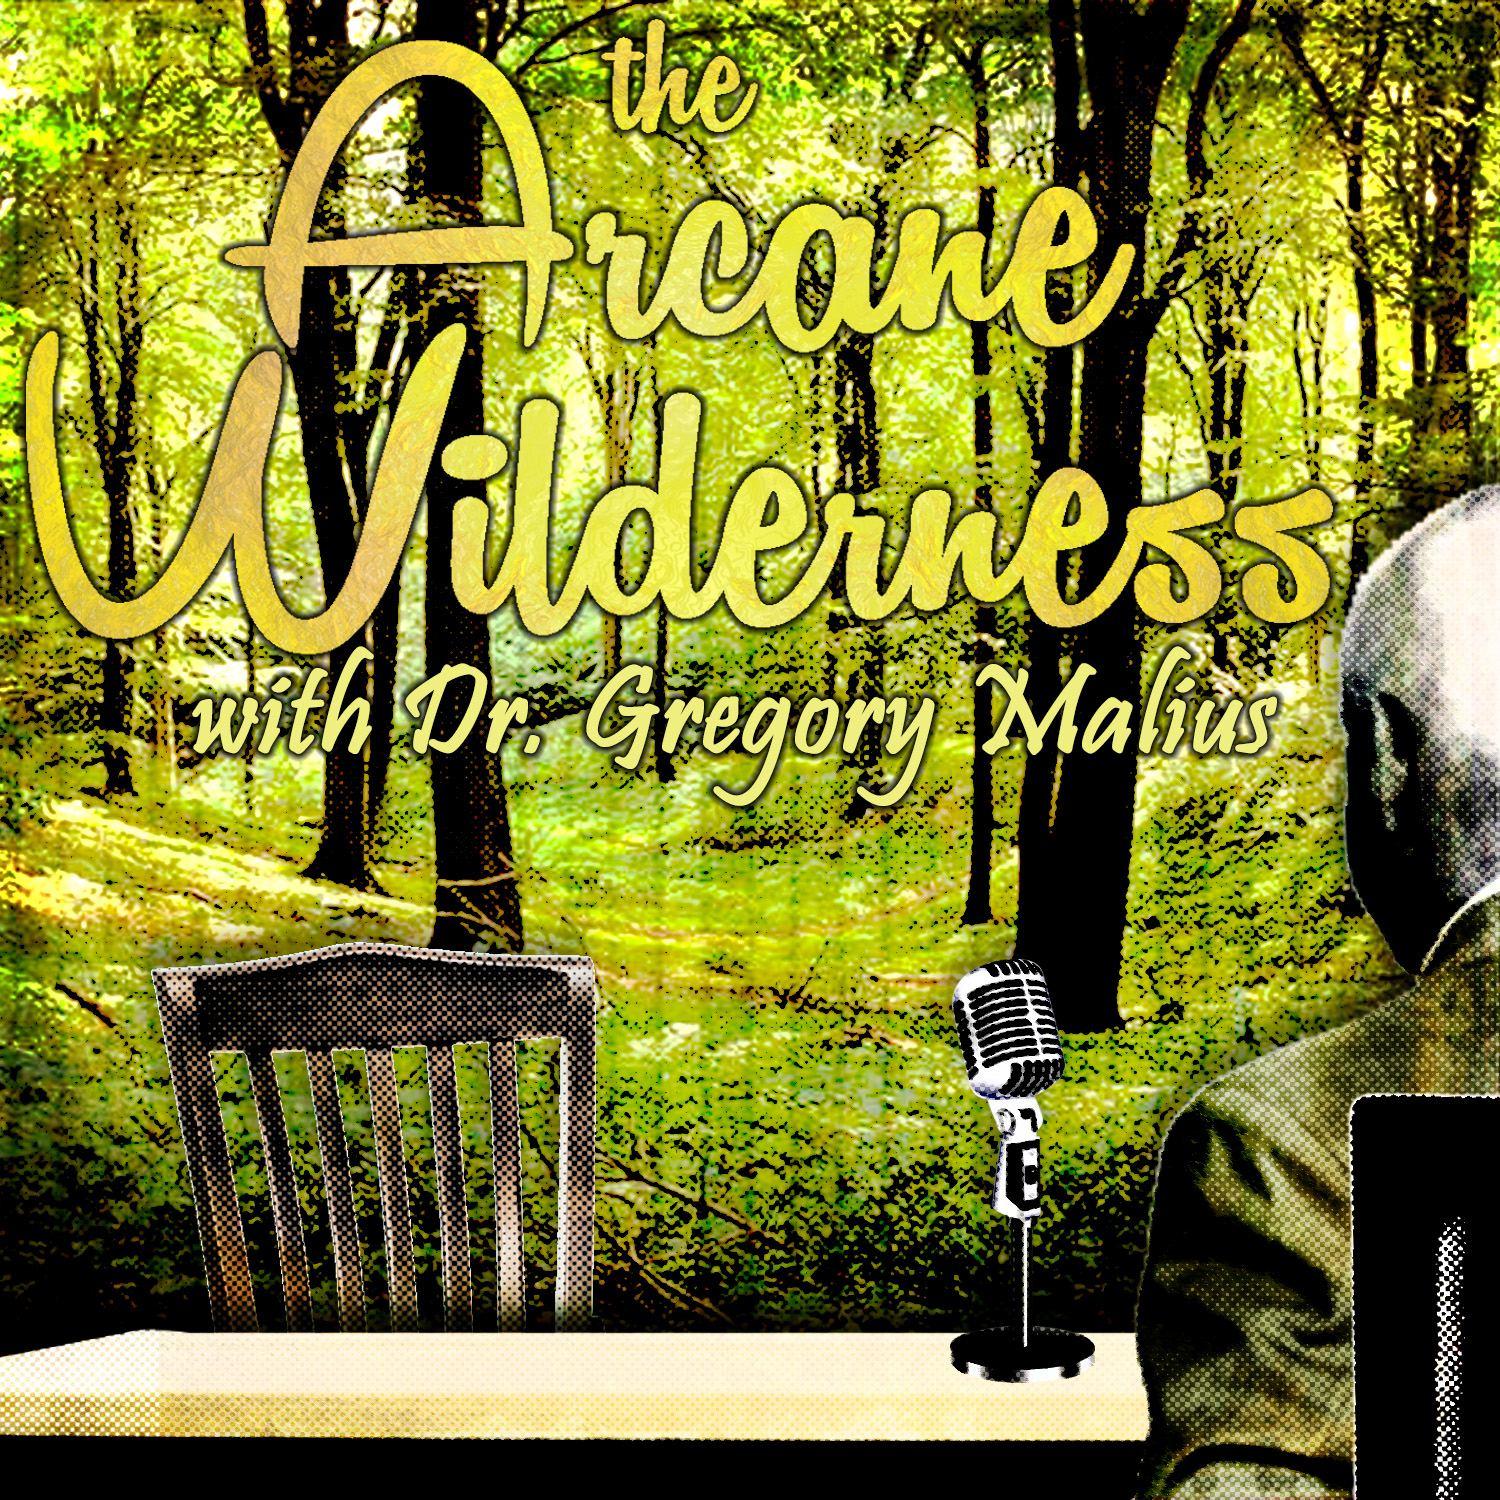 Dr. Gregory Malius ventures into the wilderness to have a chat with cryptids known and unknown.  MATURE CONTENT